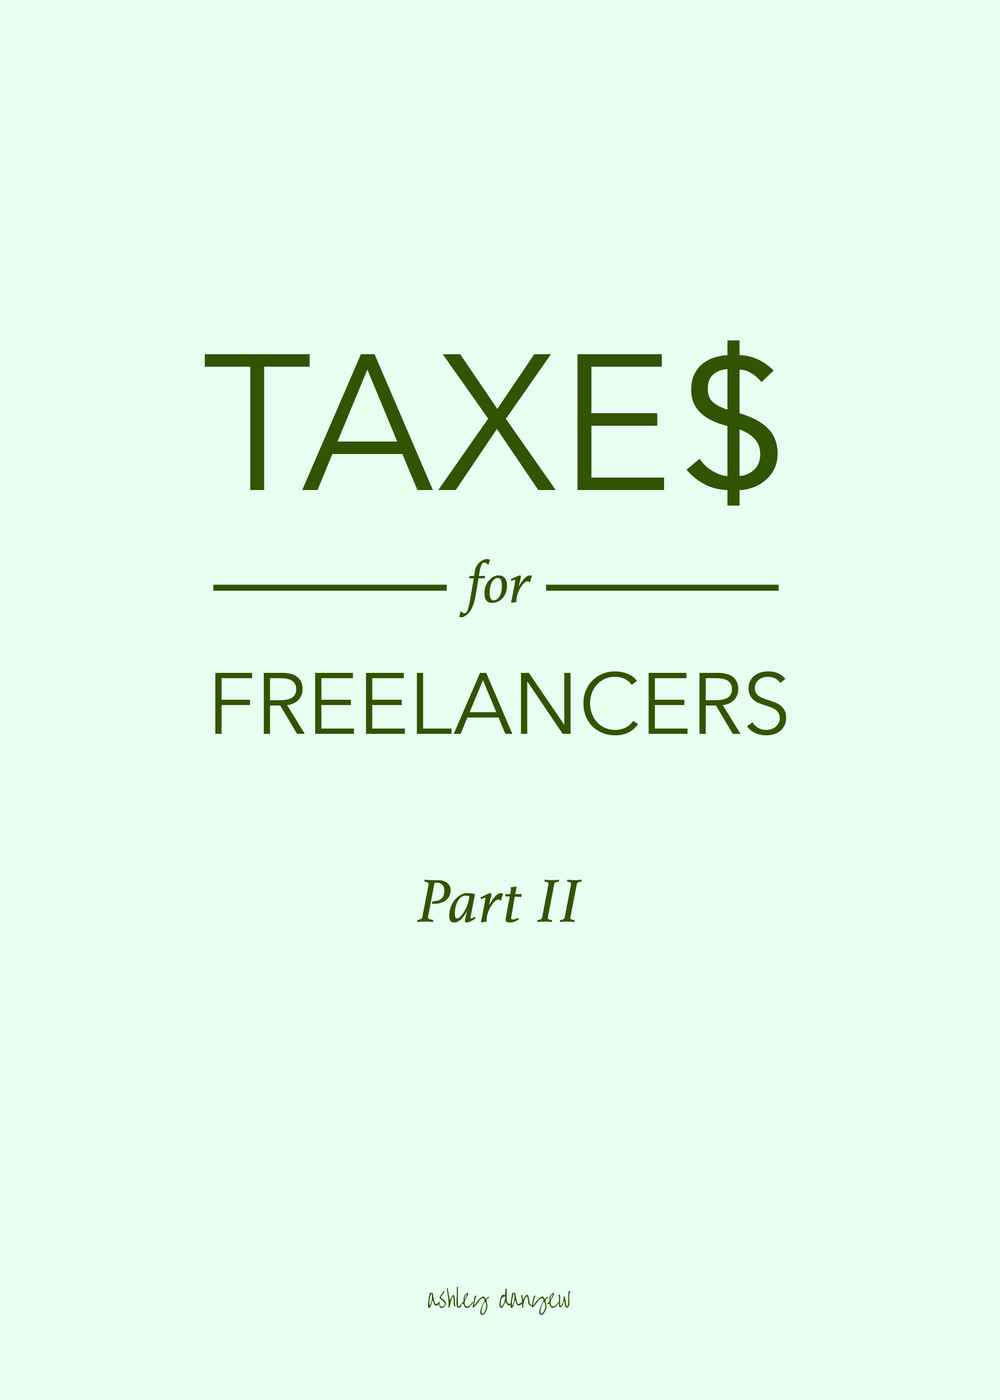 Taxes for Freelancers_II.png